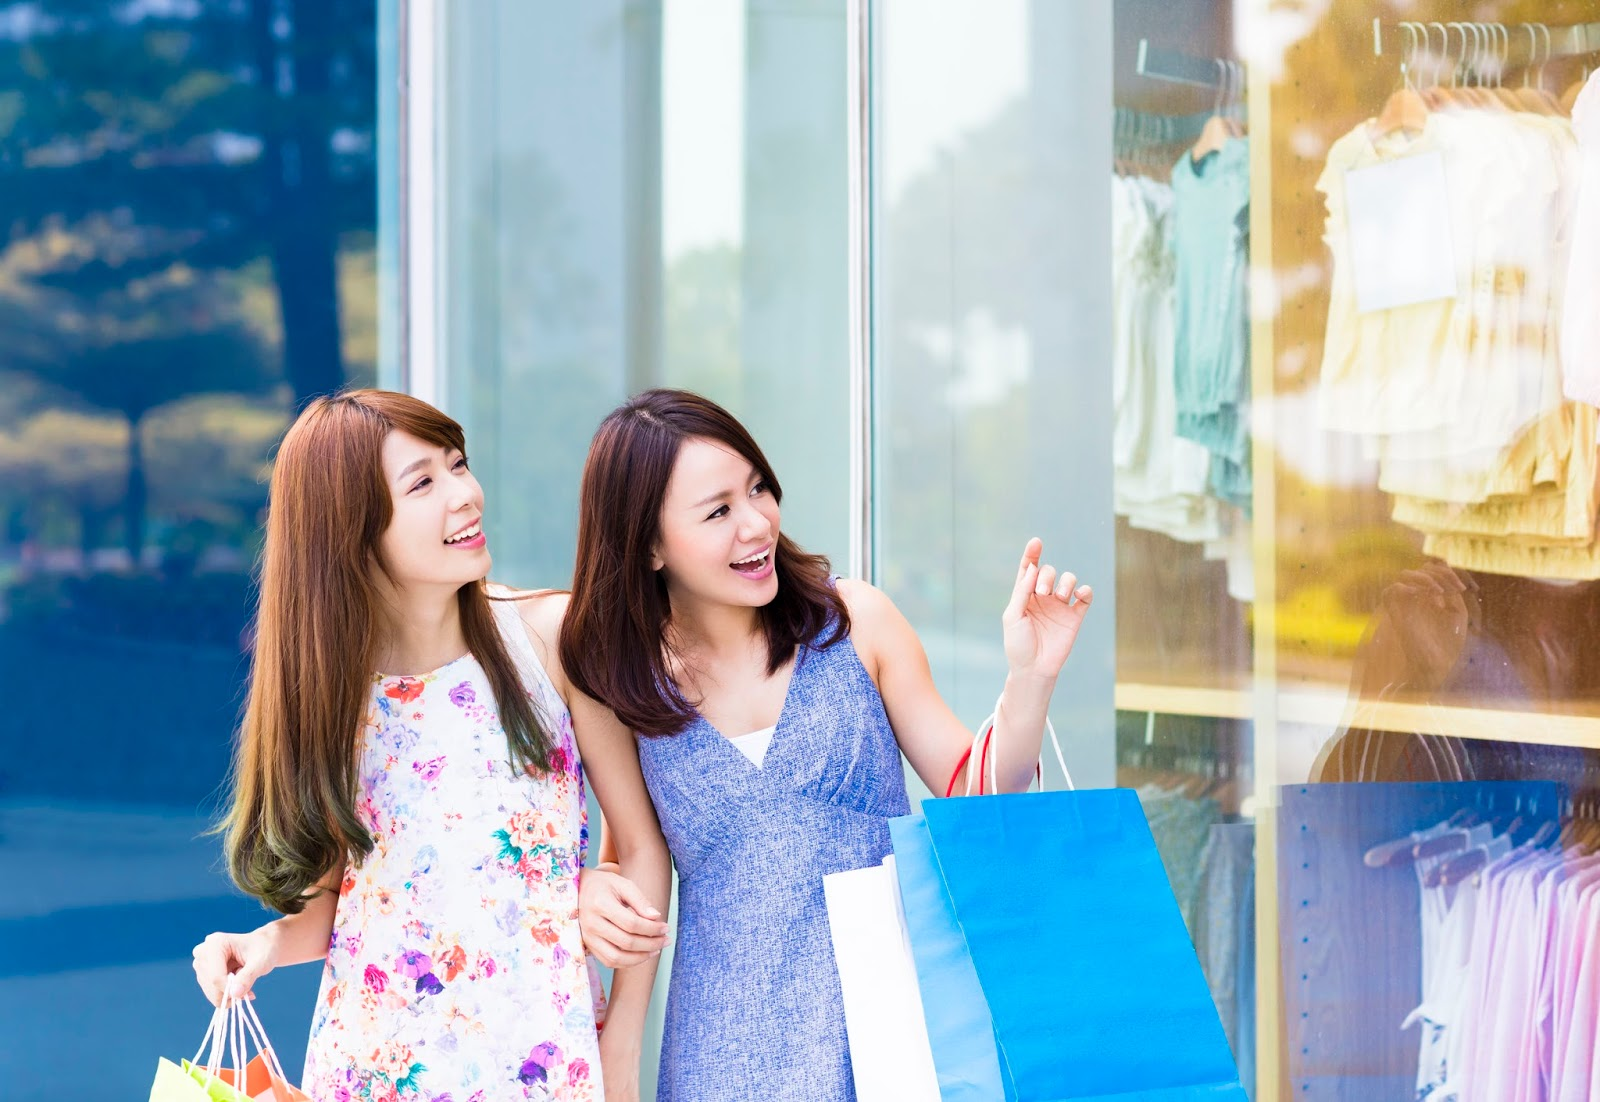 Shopping enthusiasts